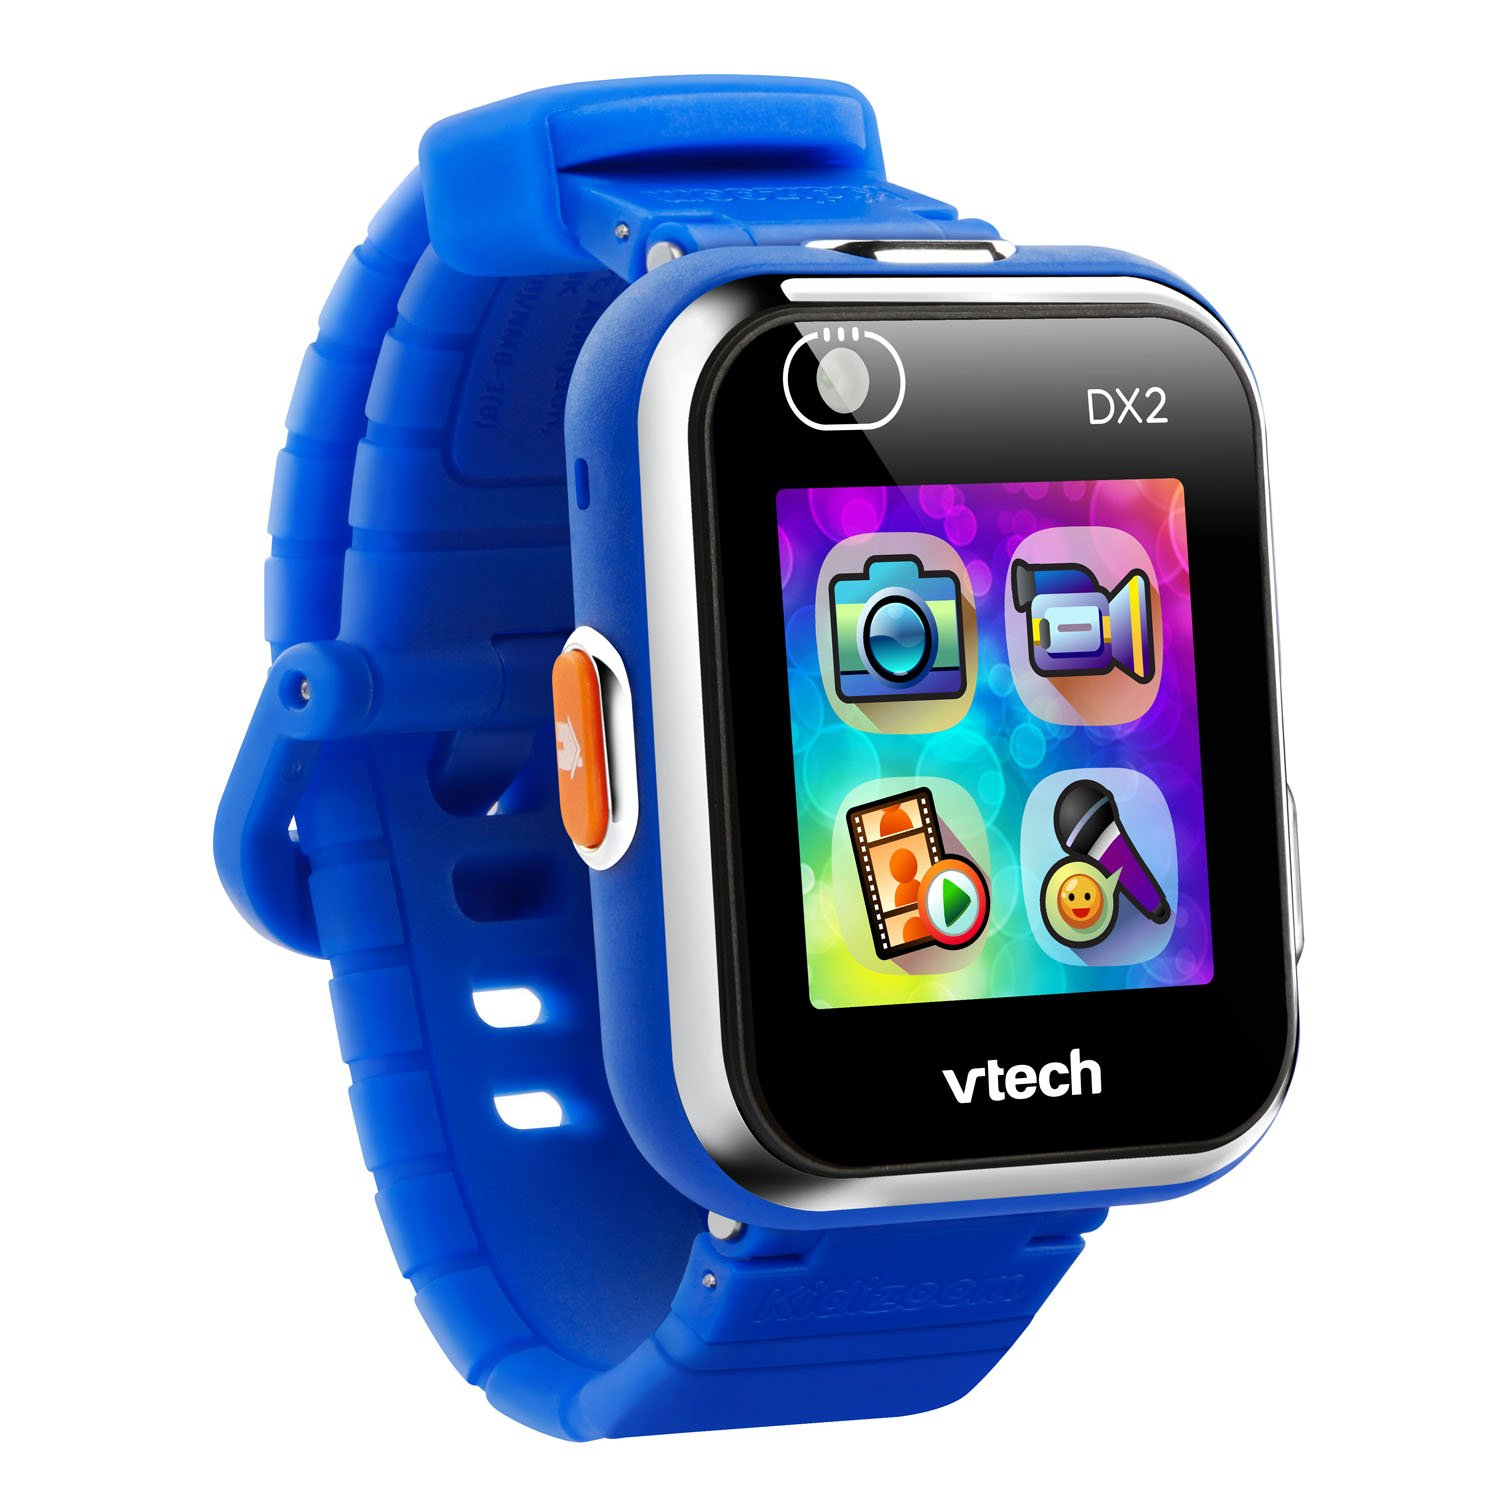 VTech Kidizoom Smartwatch DX2 Blue (Frustration Free Packaging) by VTech